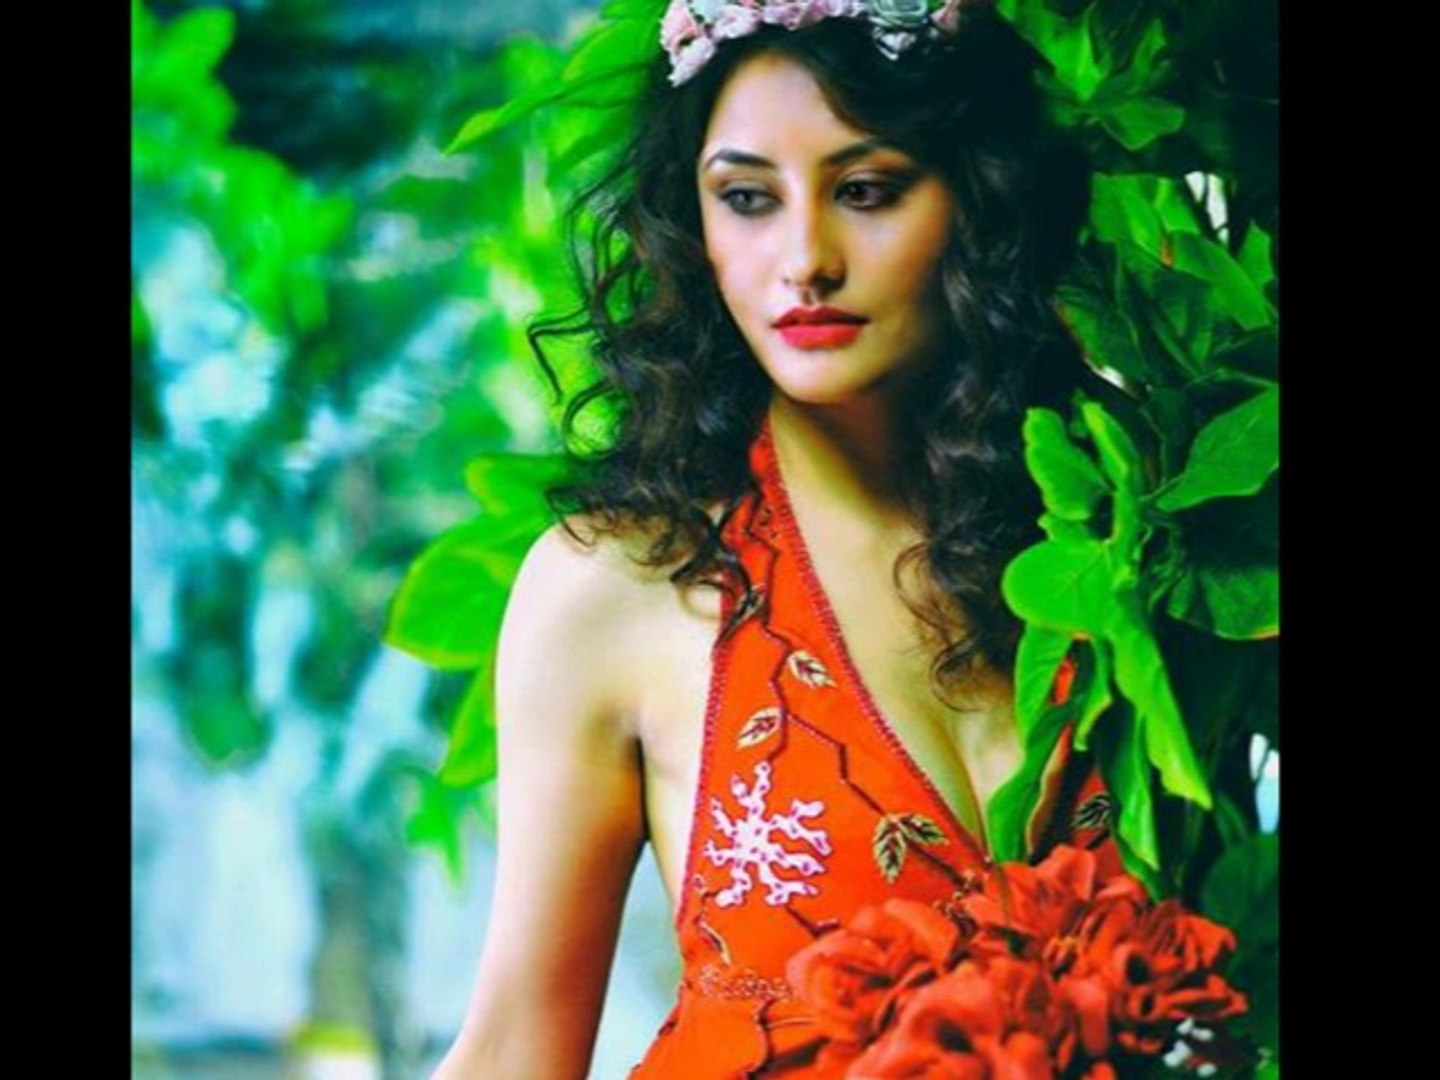 Anastasia Dumitrescu miss isha singh from india as contestant in miss world peace & humanity  pageant 2014